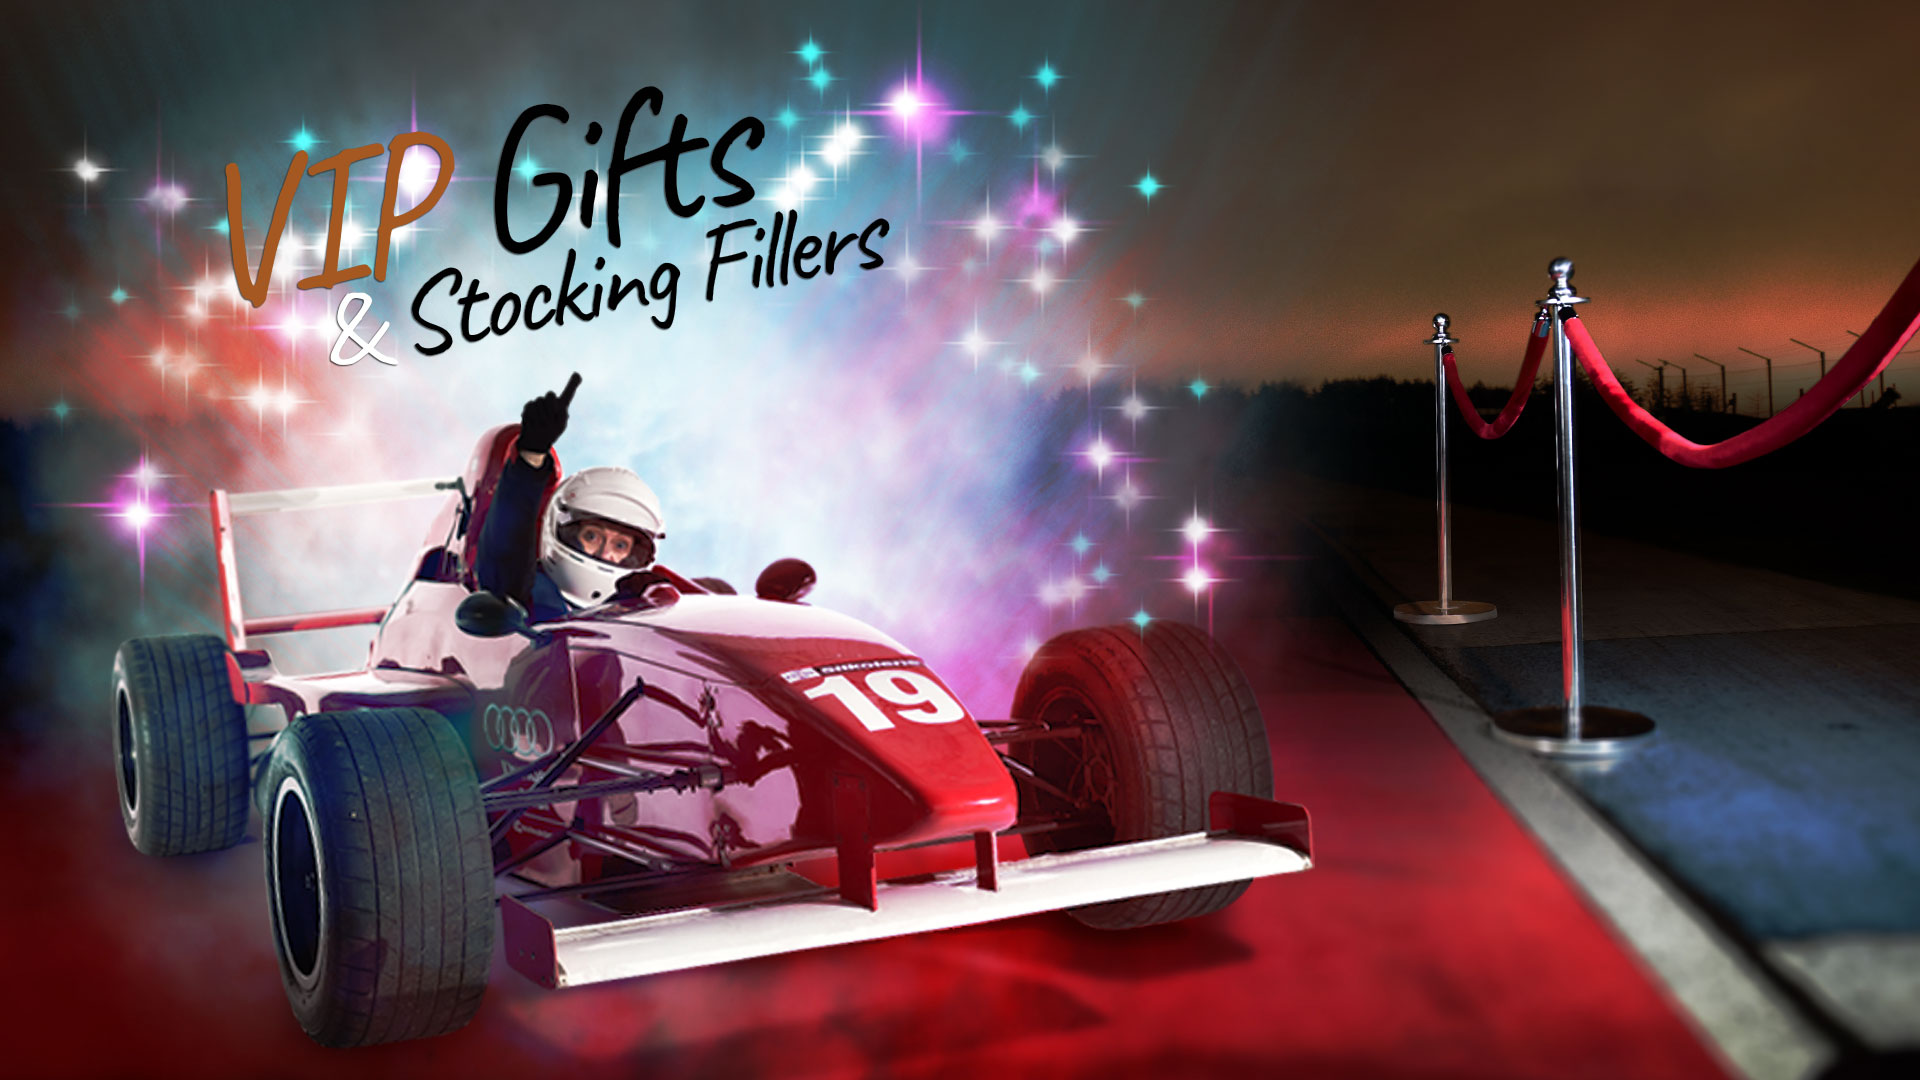 VIP Christmas Promotions with Stocking Fillers